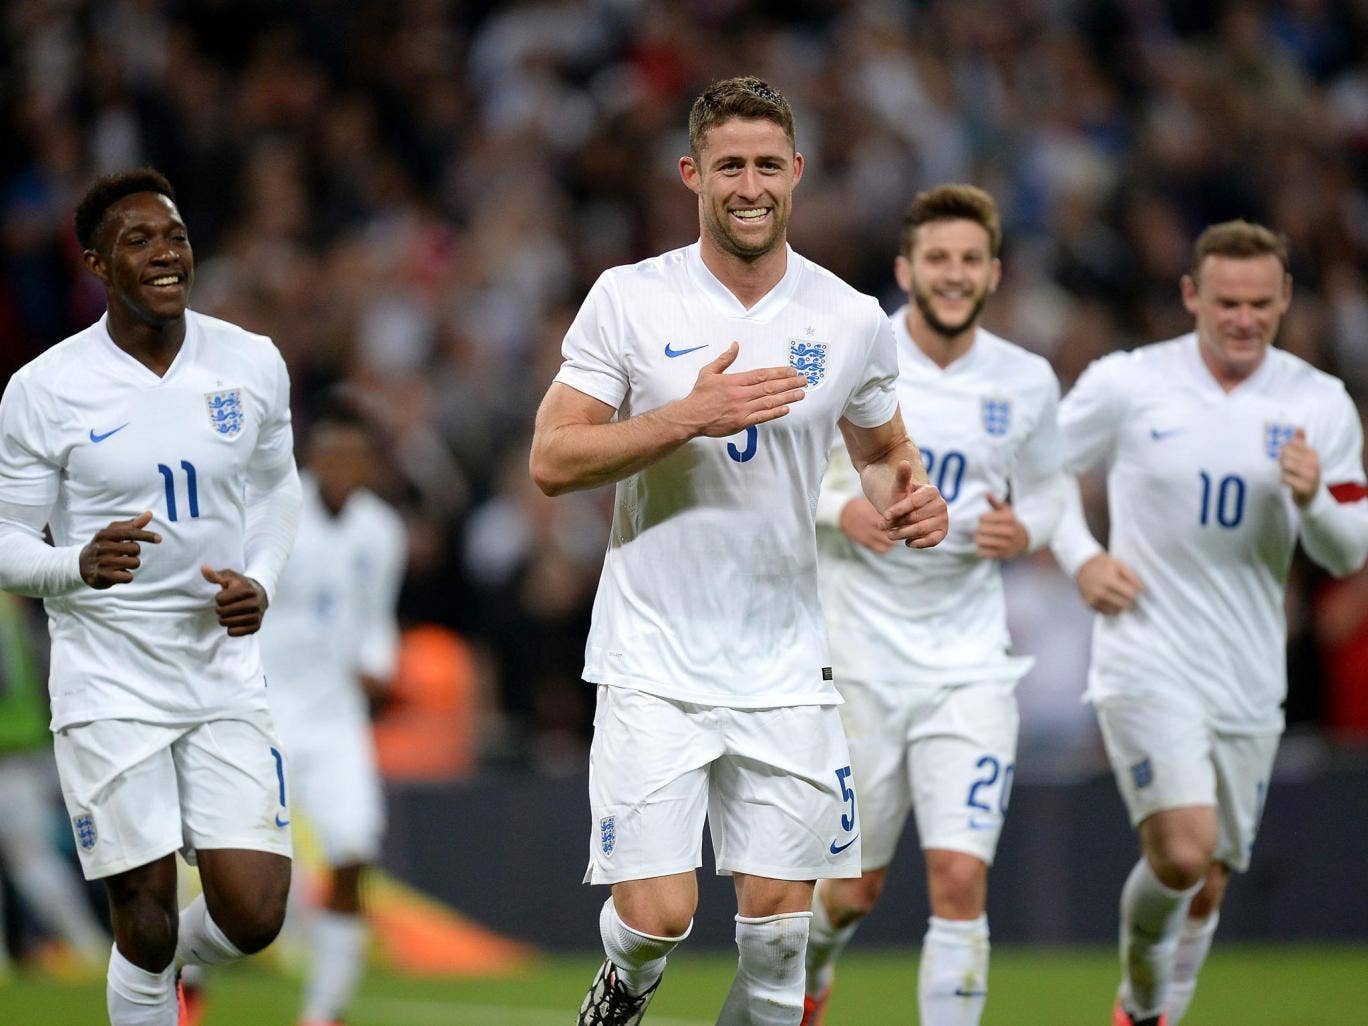 Gary Cahill (left) celebrates after putting England 2-0 up against Peru at Wembley last night. They went on to win 3-0 in their last game before heading to the United States